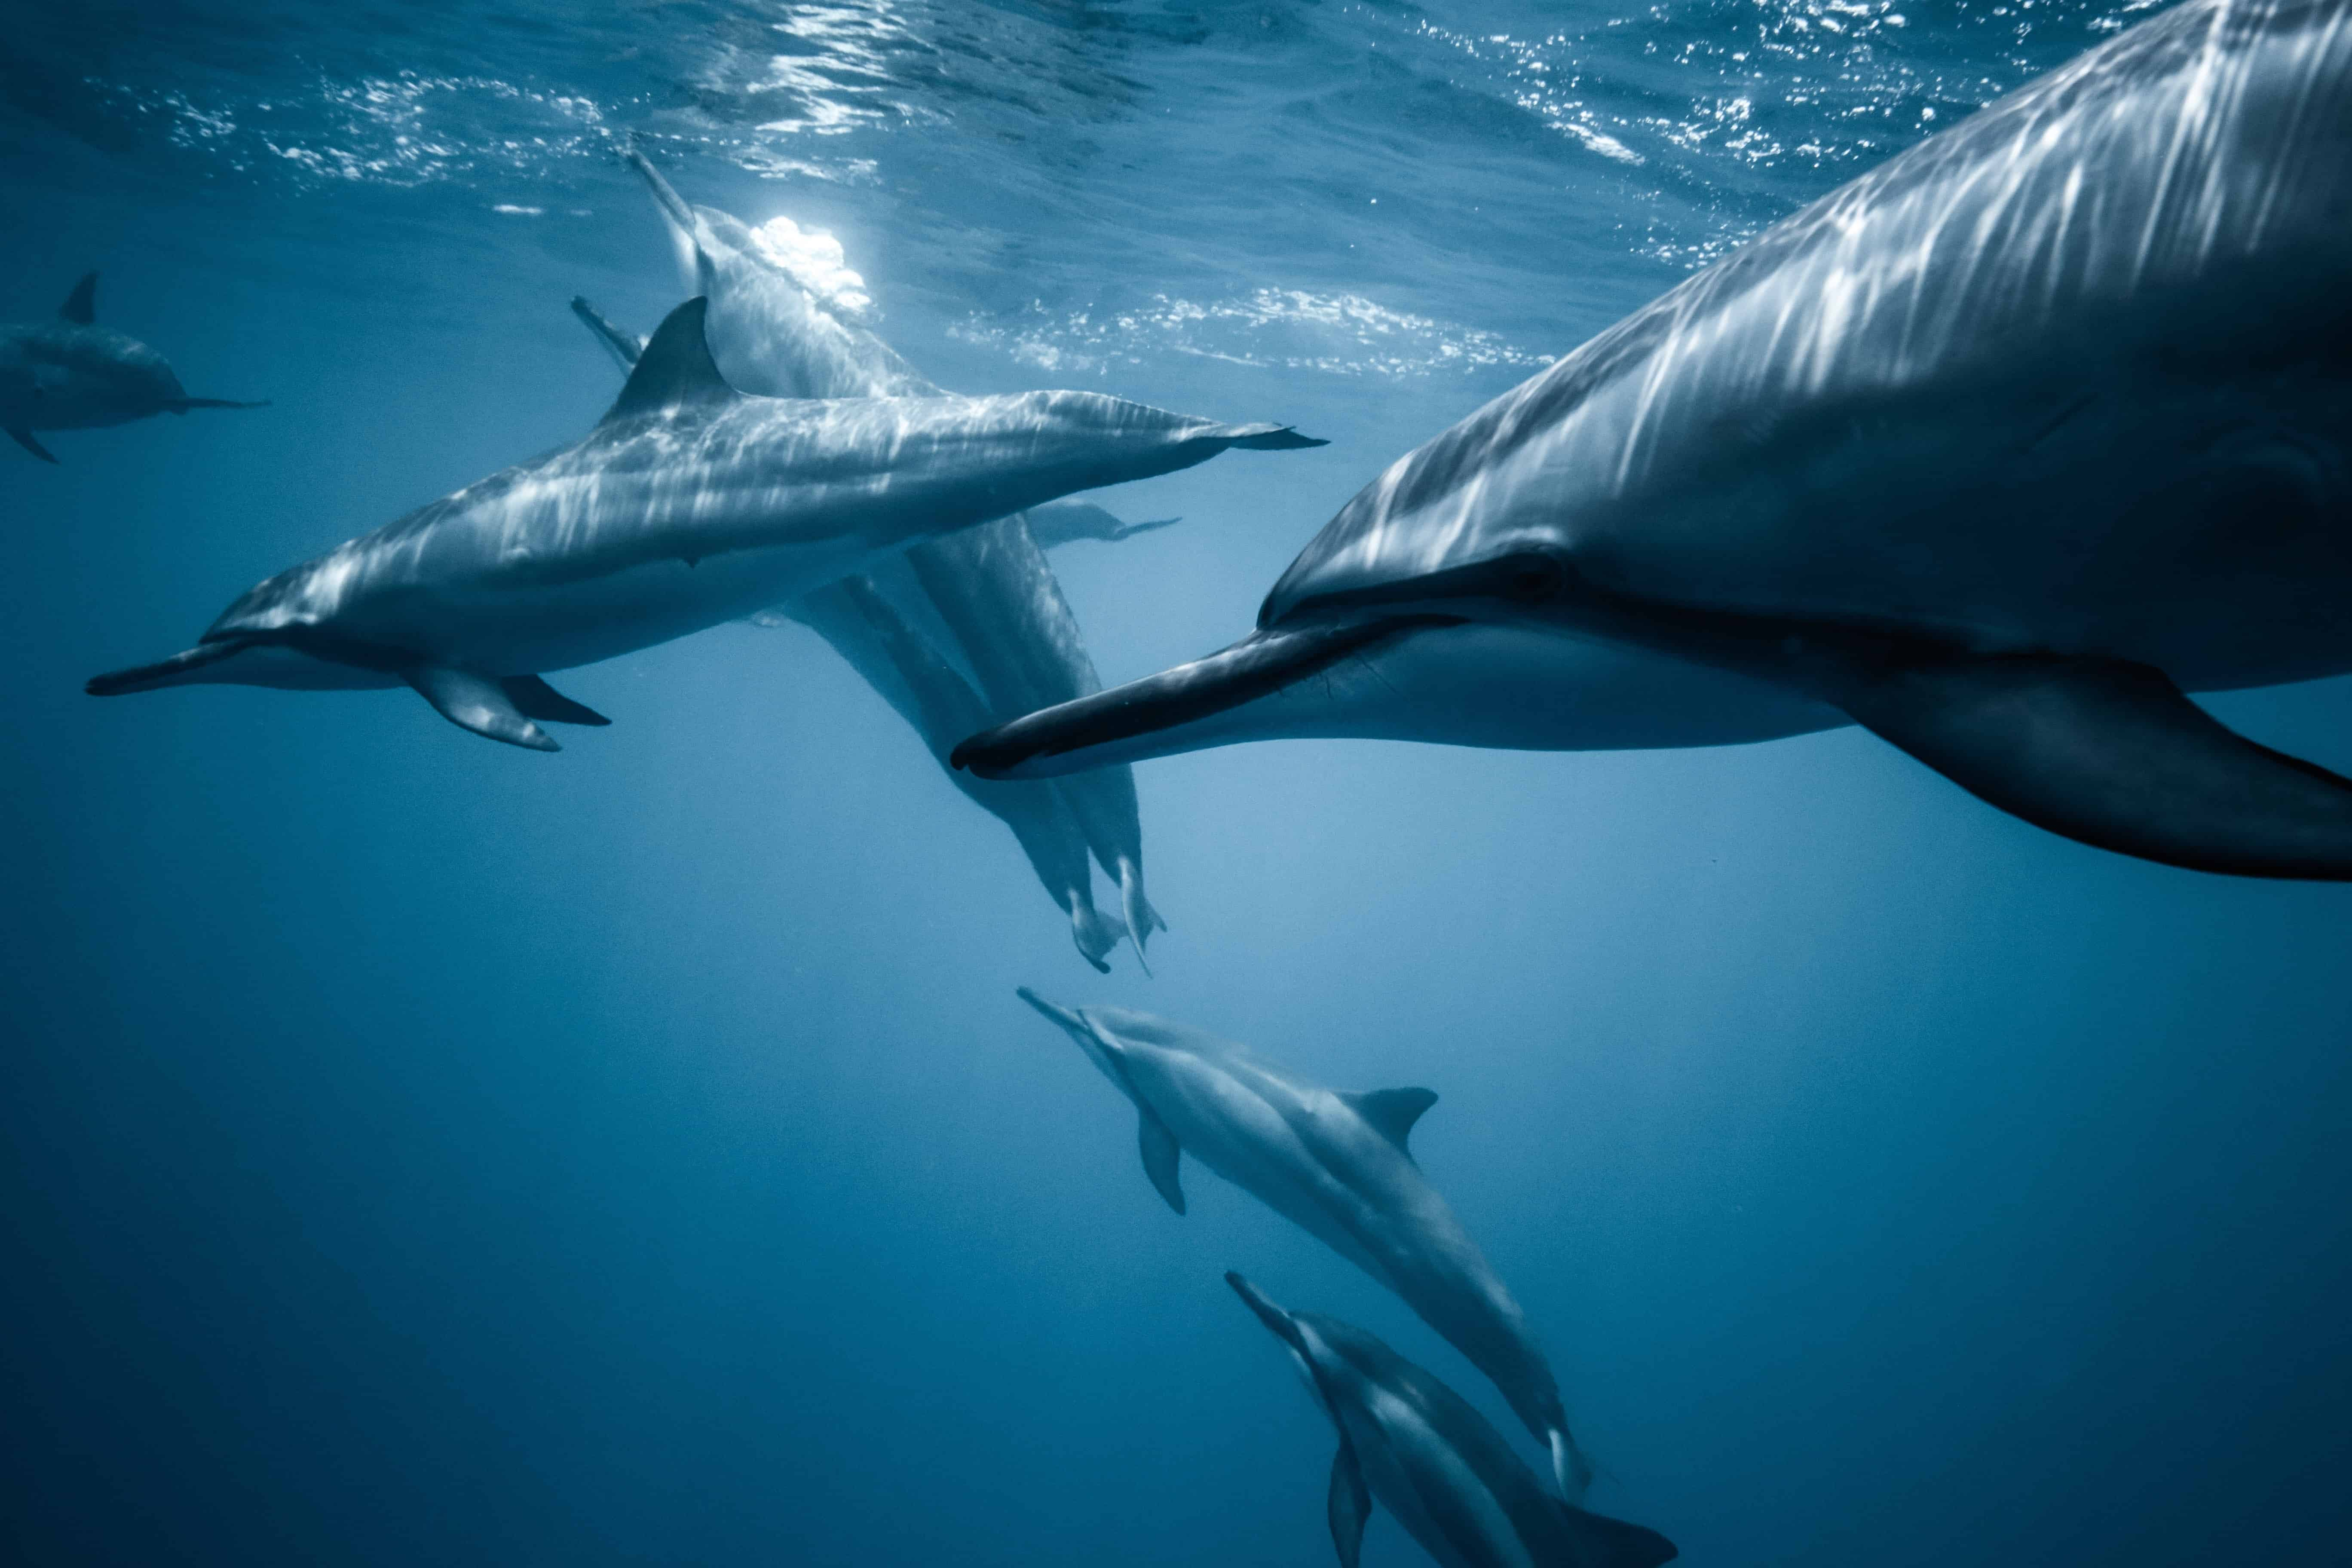 Dolphins in the sea, dolphin facts